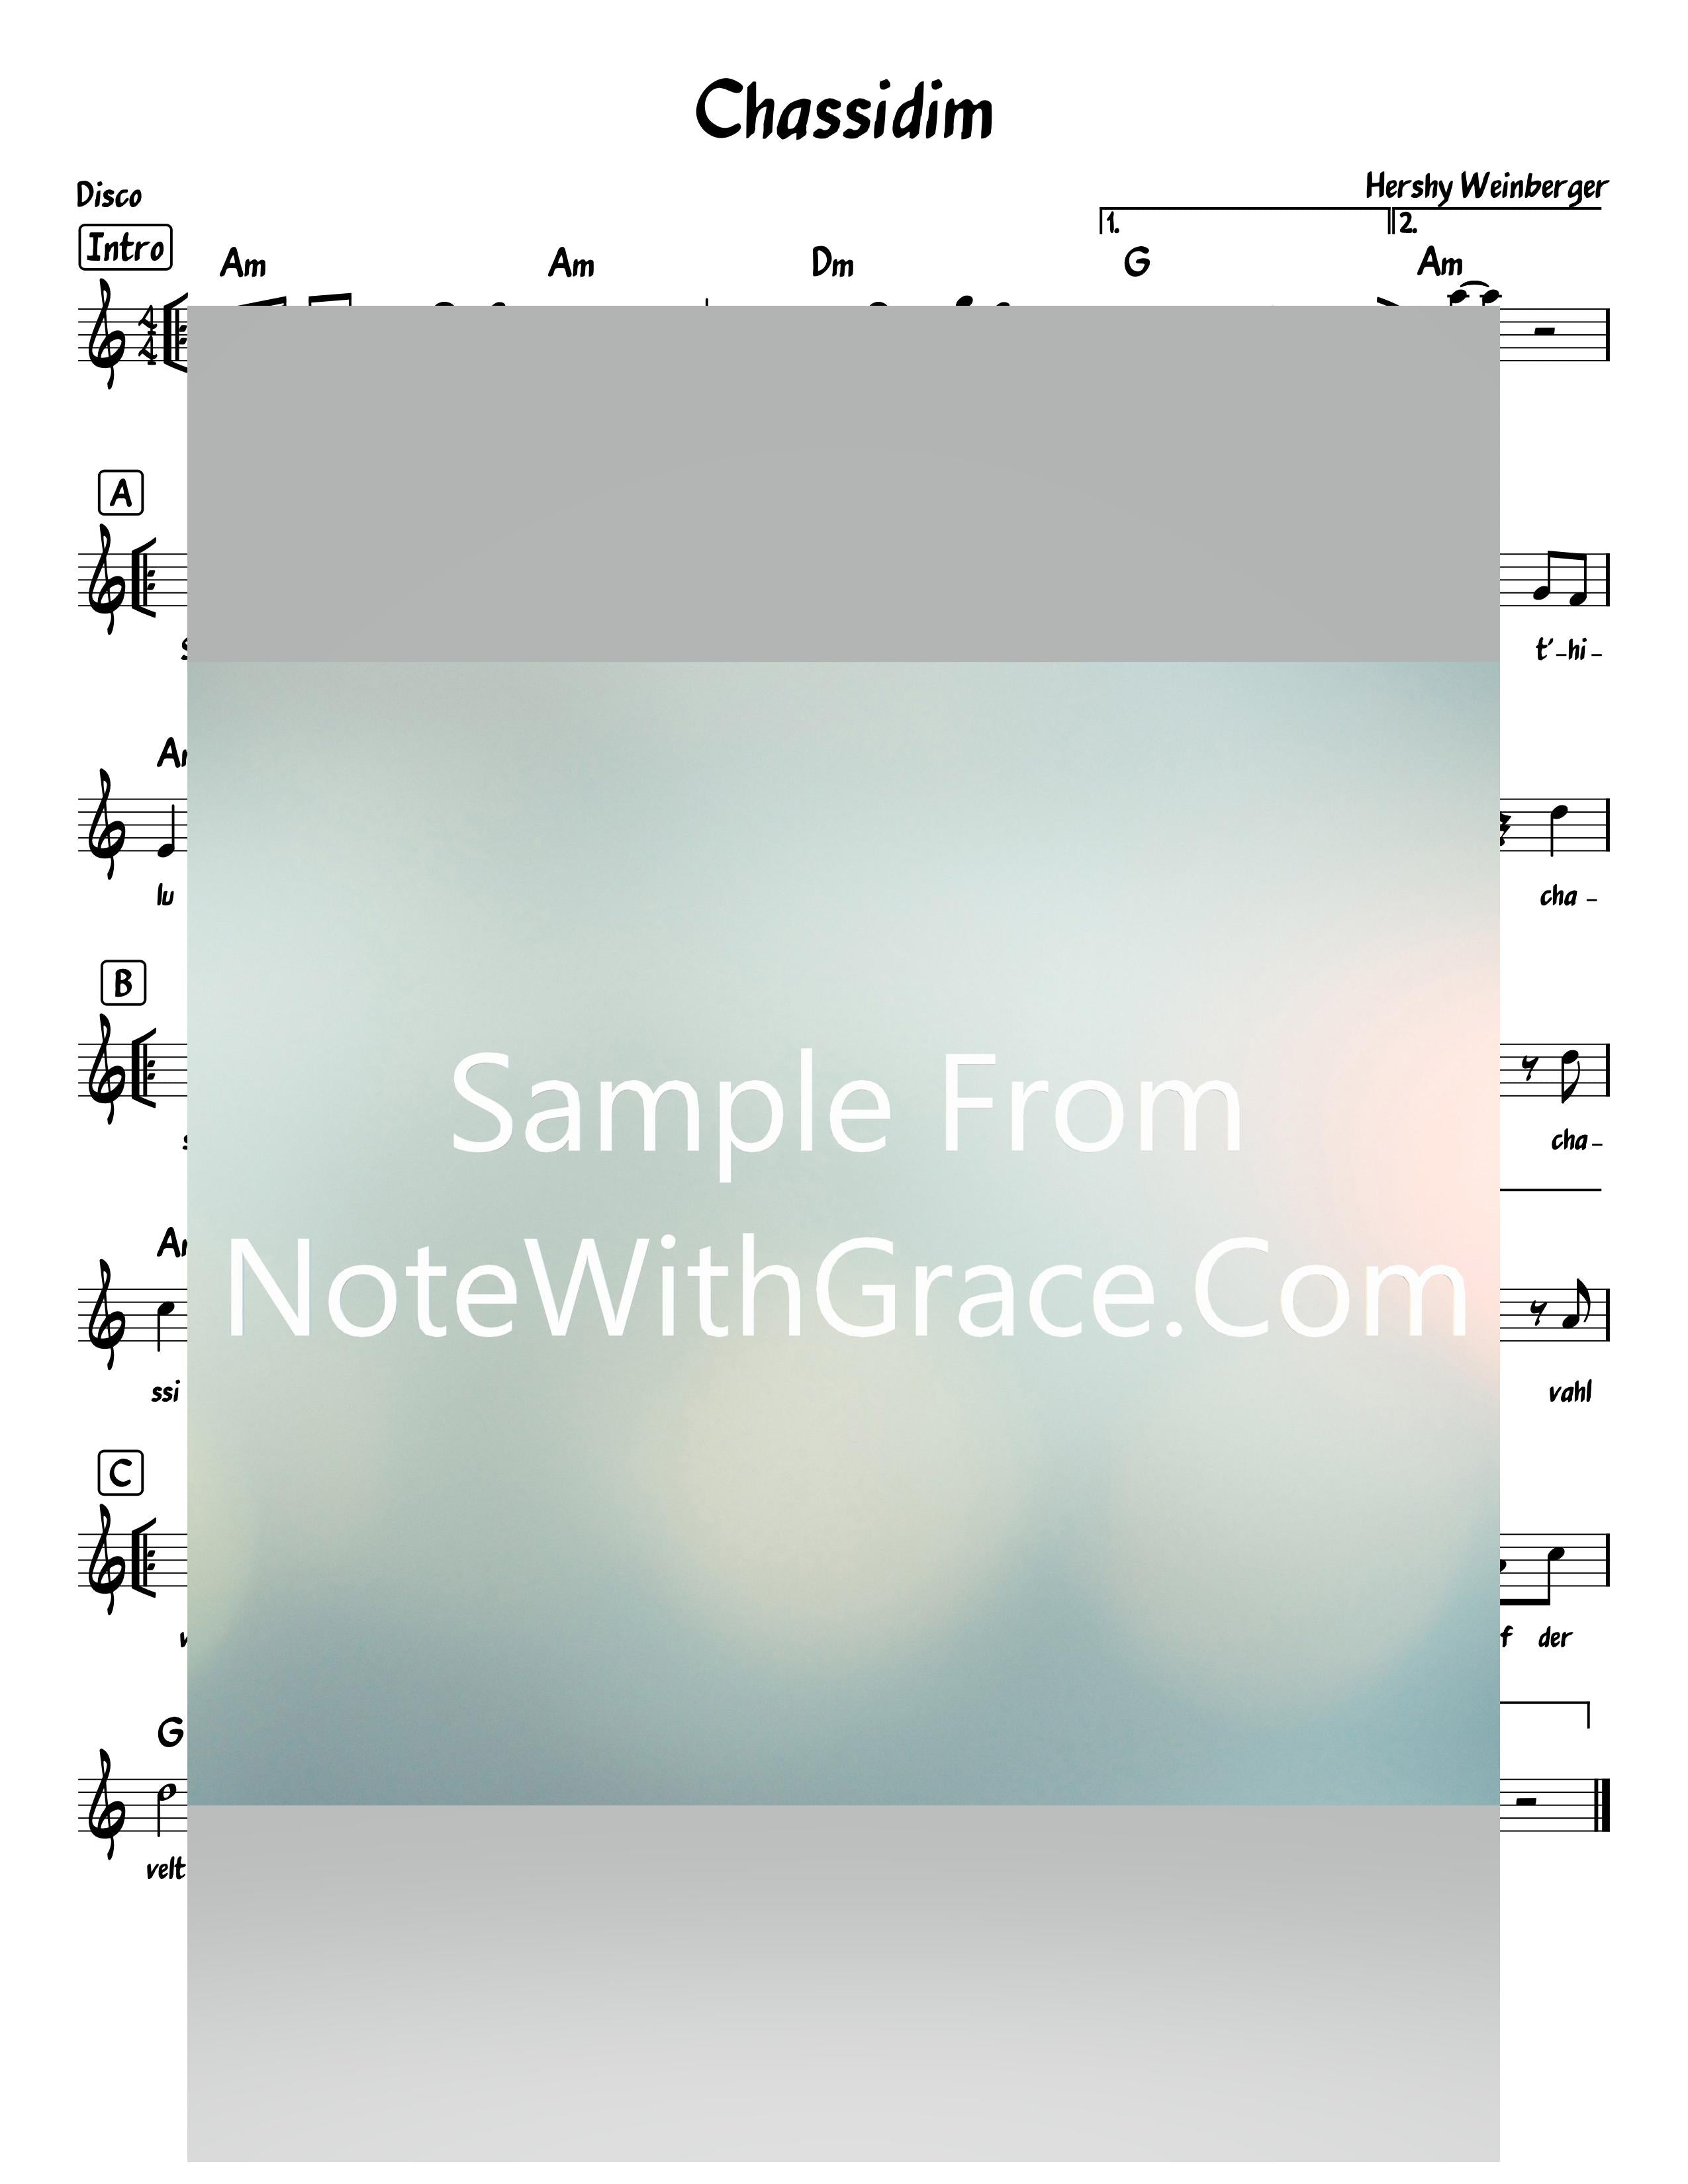 Chassidim - חסידים Lead Sheet (Hershy Wienberger) L'chaim Chassidim 2019-Sheet music-NoteWithGrace.com